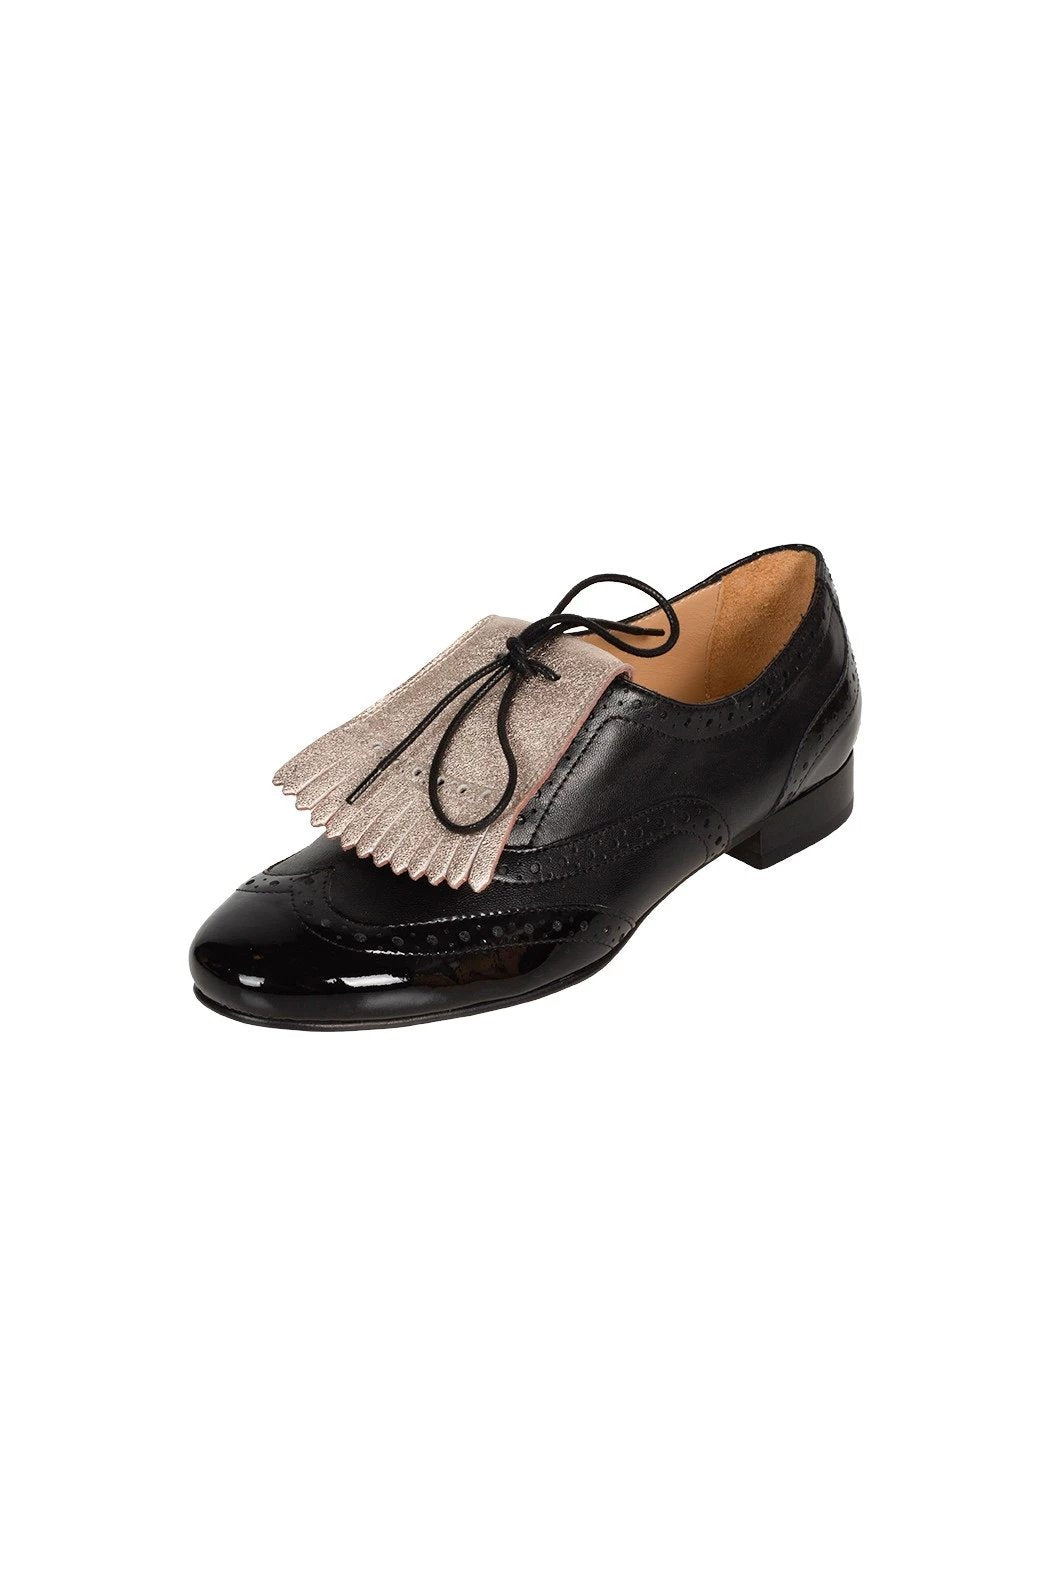 Black italian leather brogues with detachable and reversible nude metallic fringe